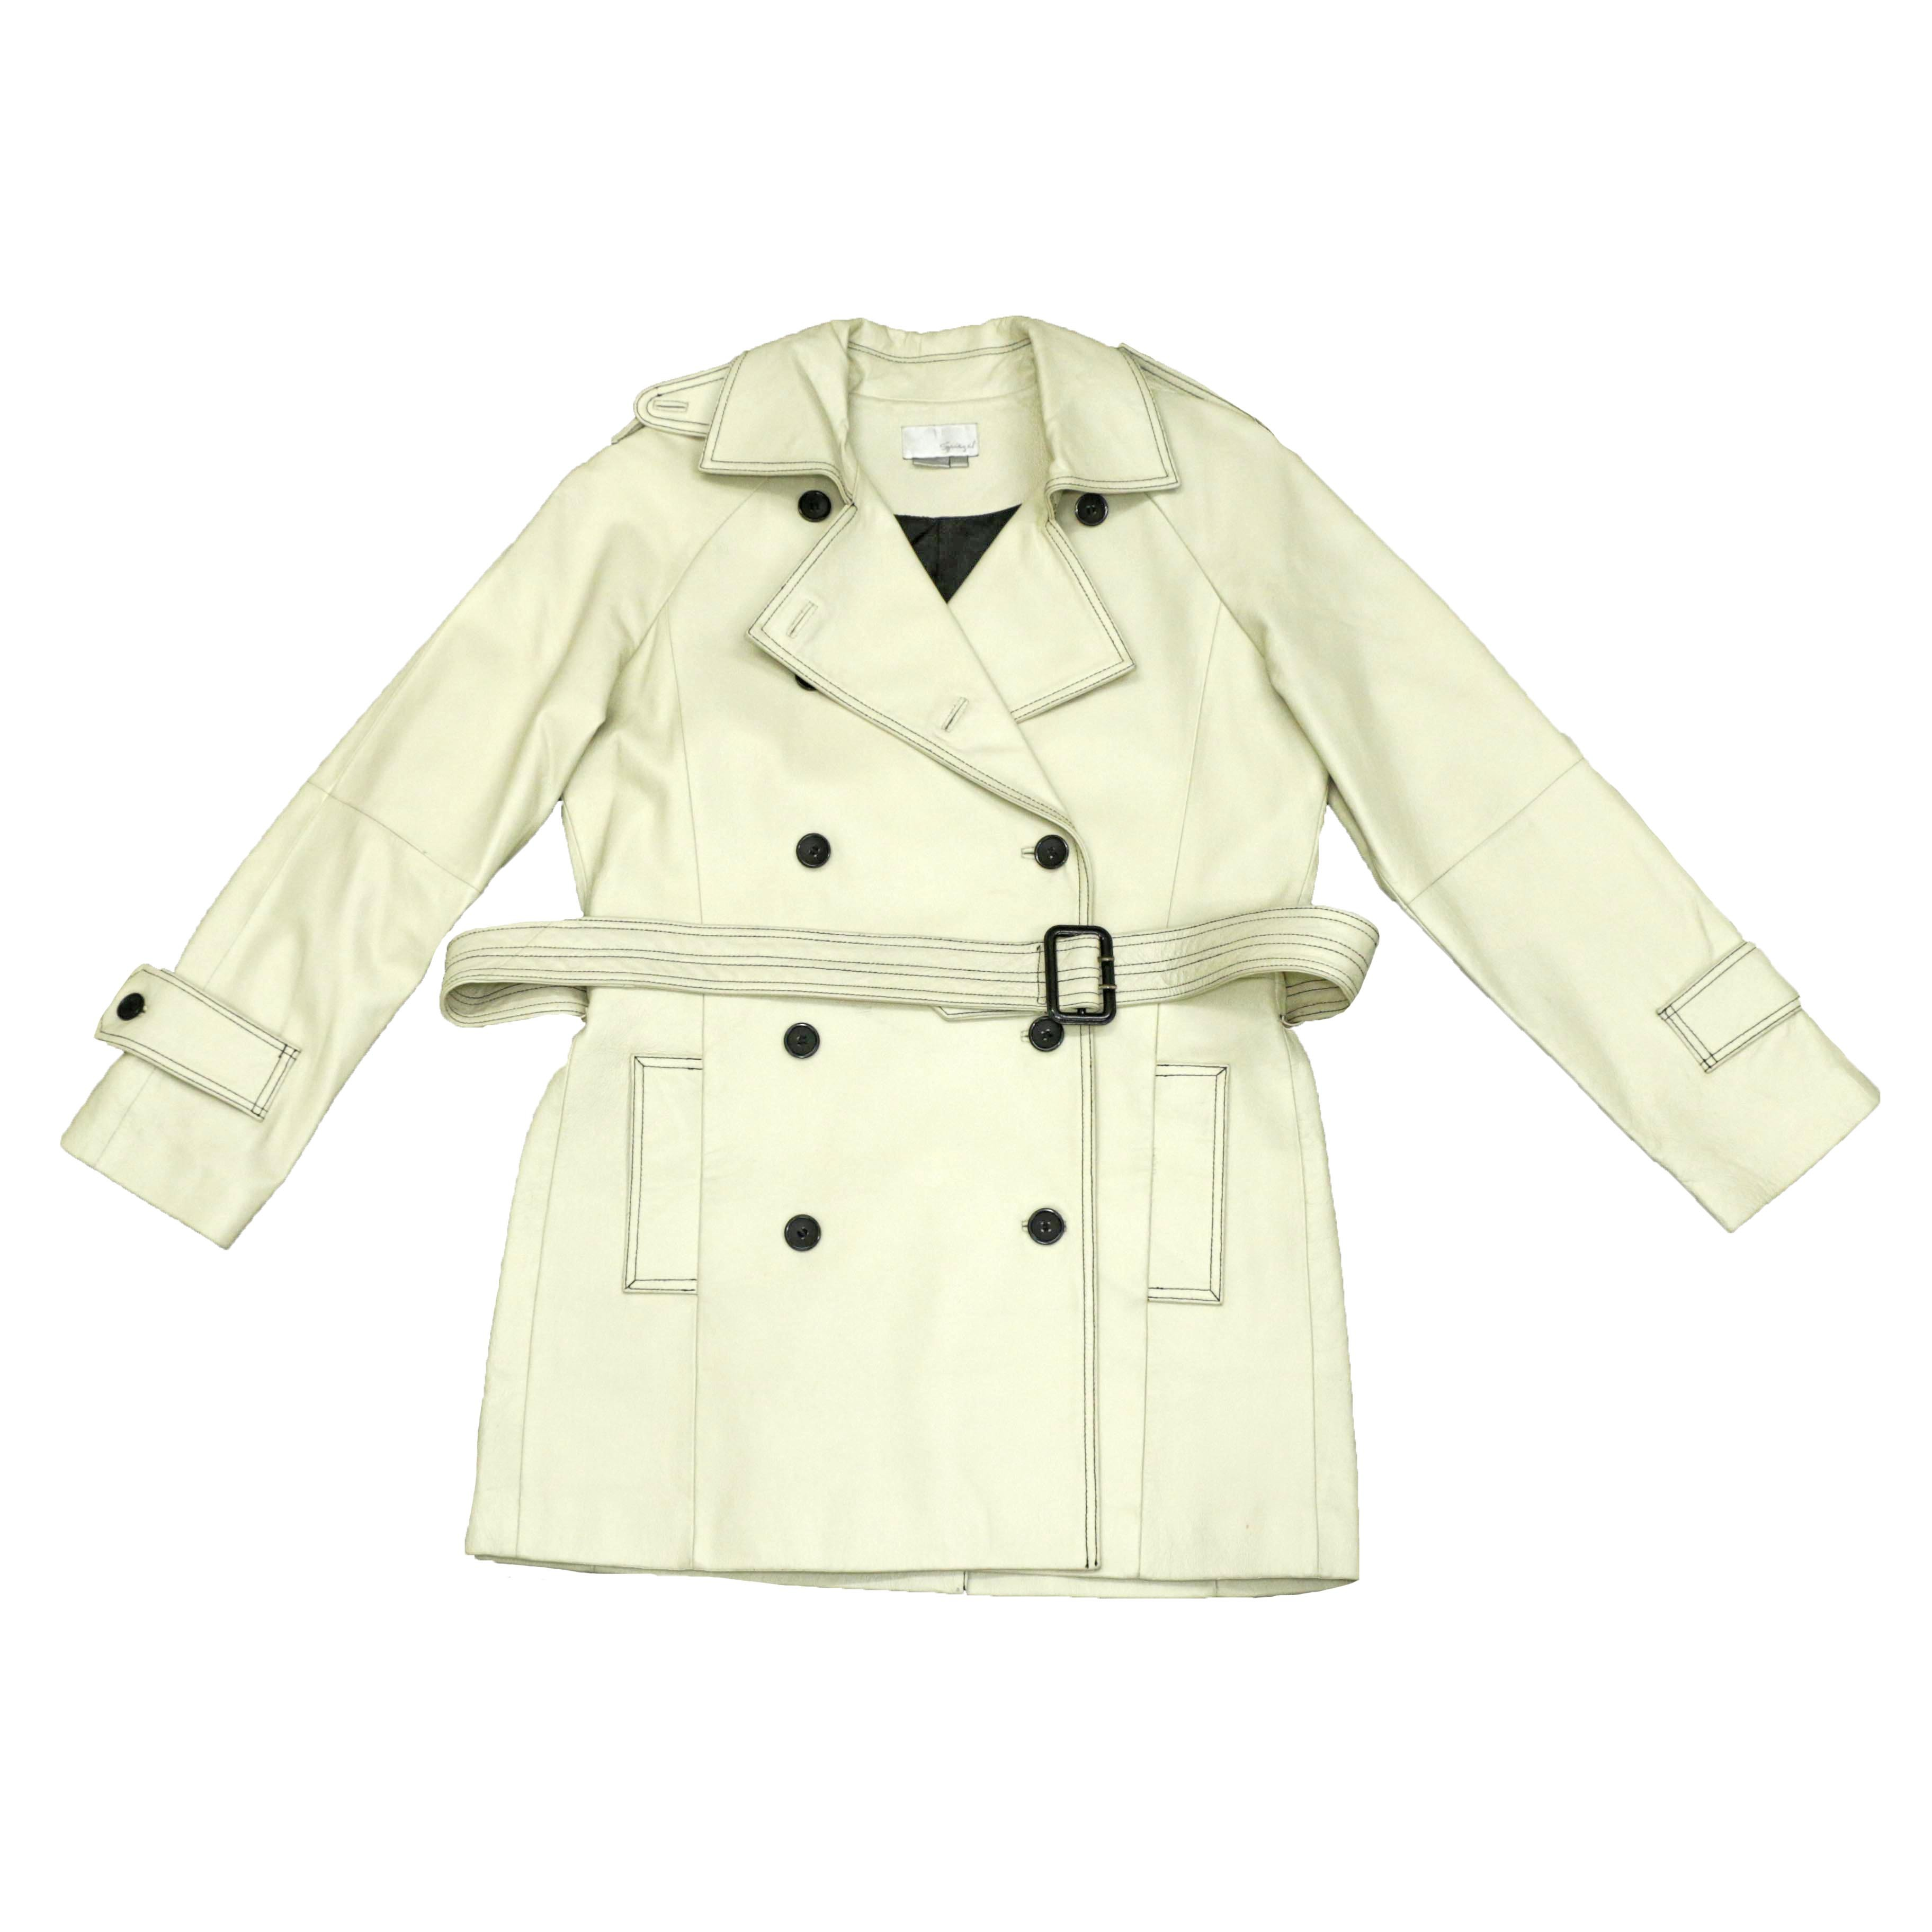 WhiteLeatherTrenchCoat